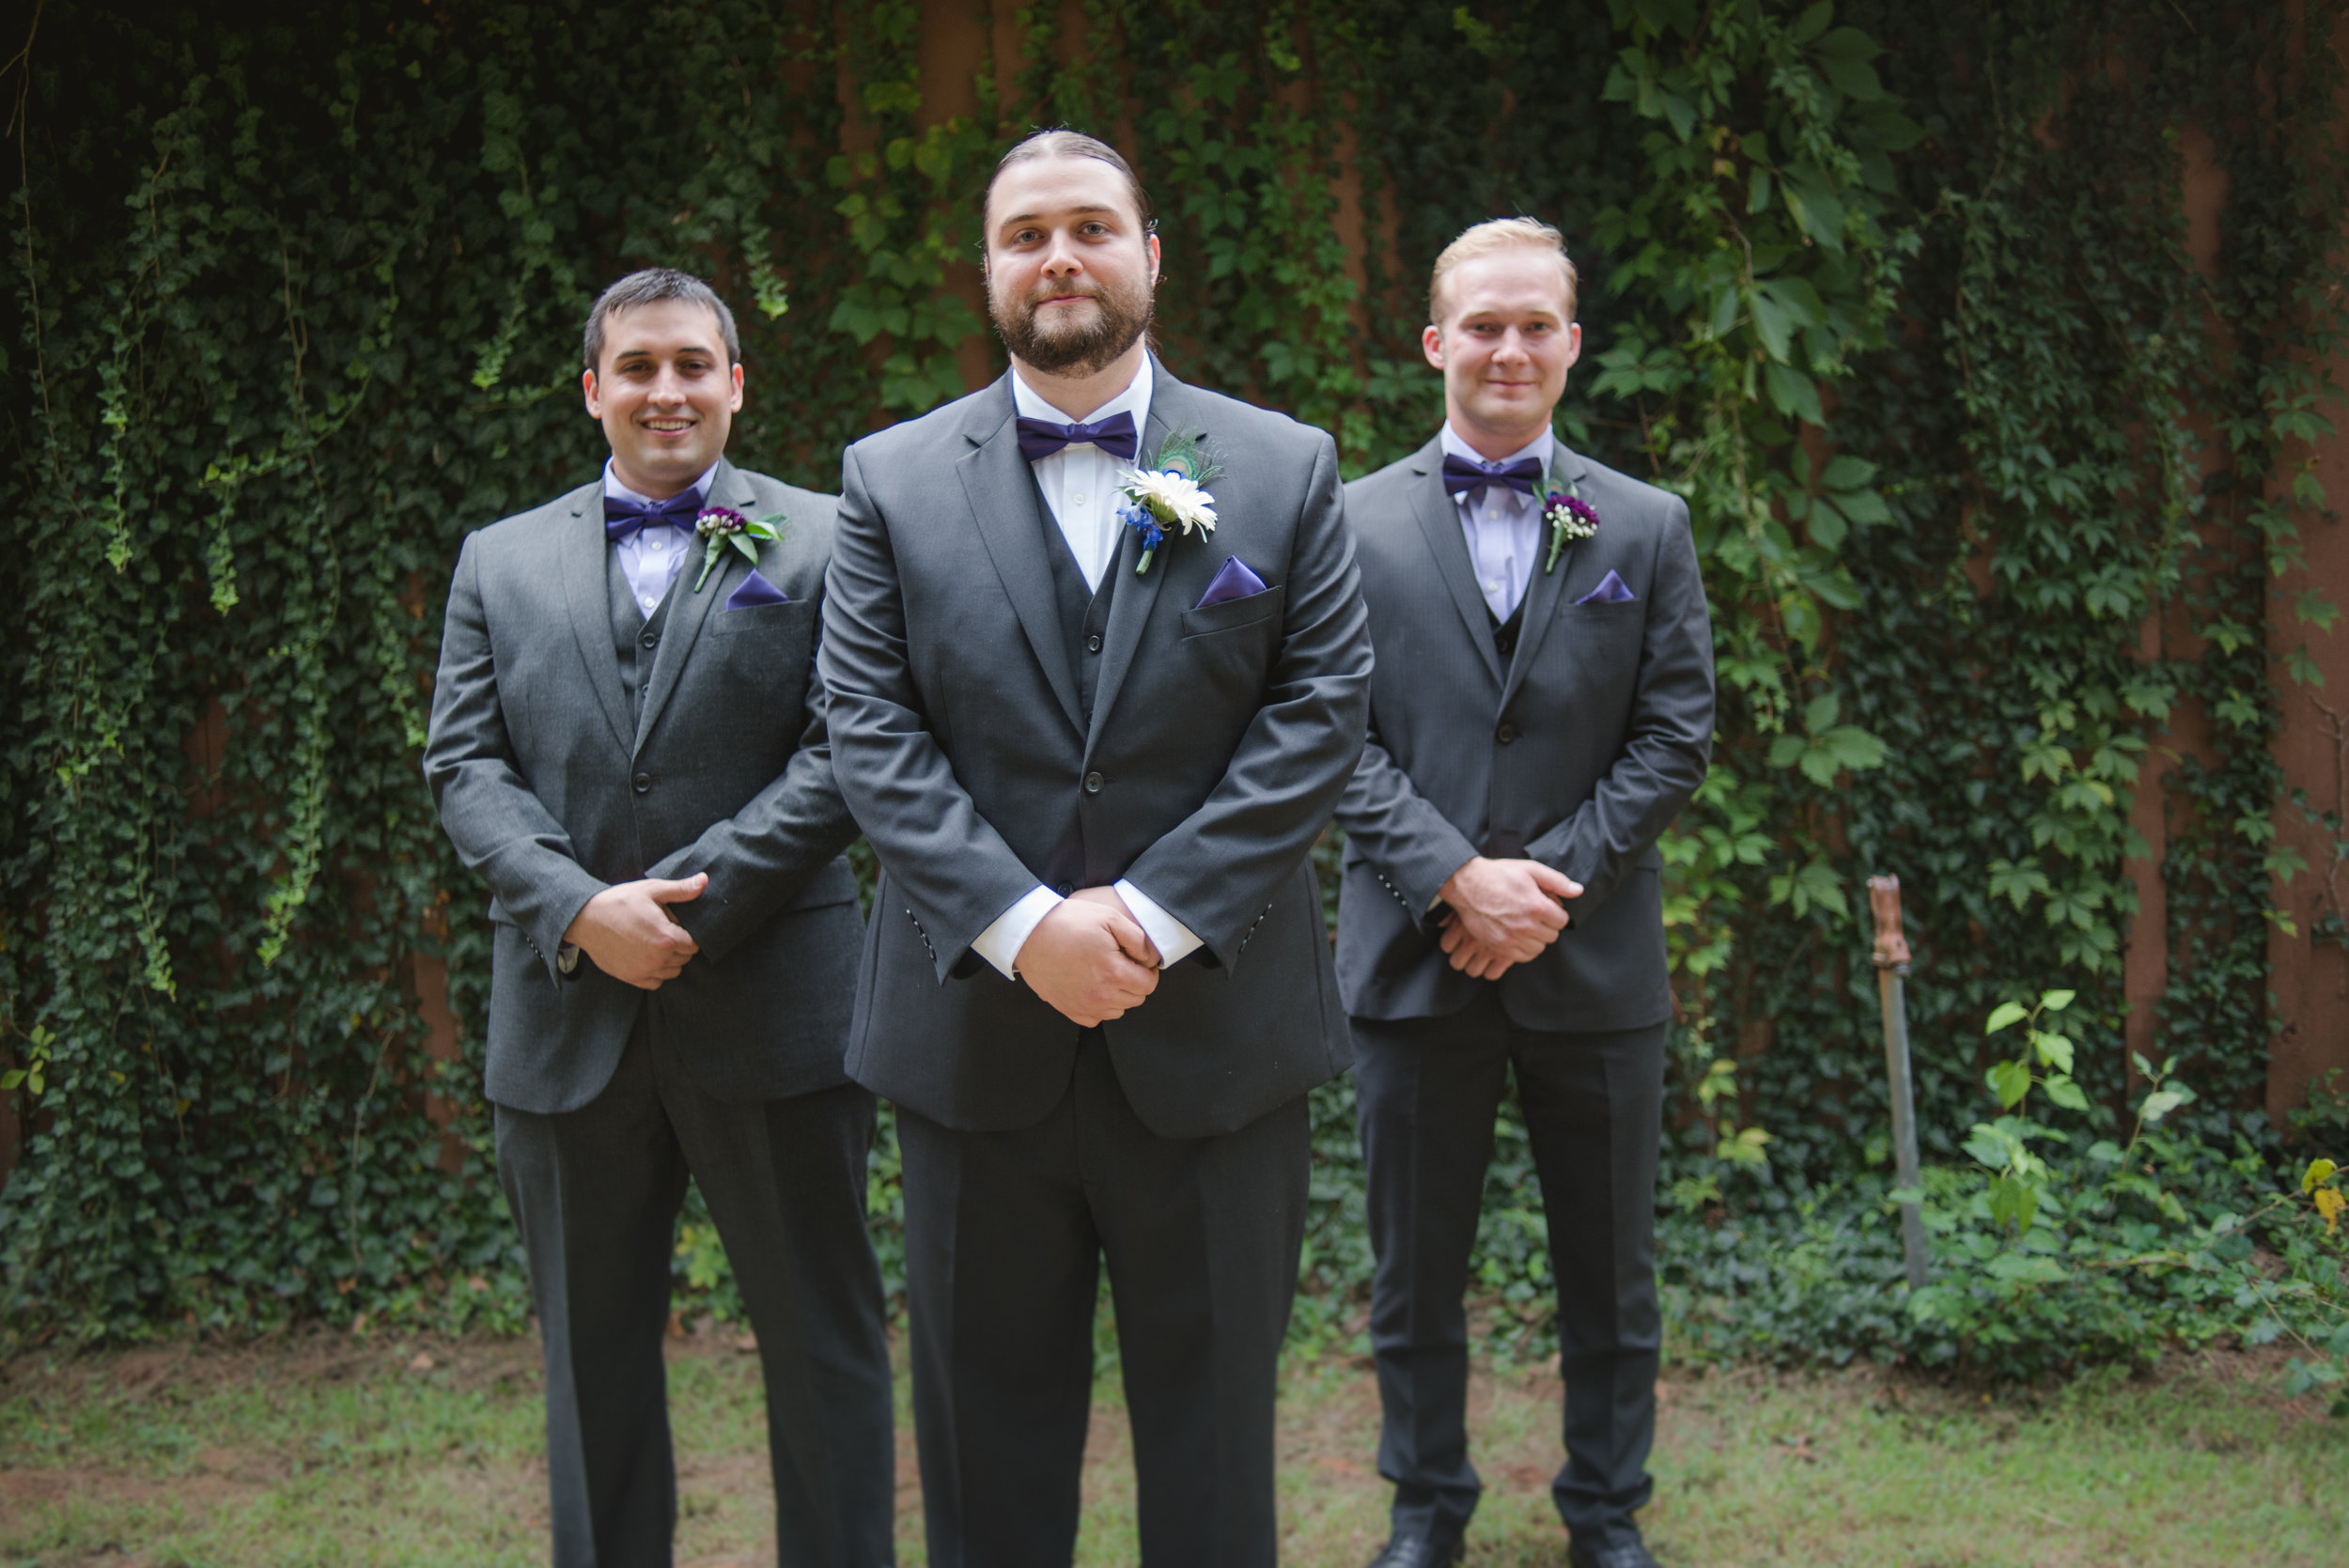 JM_EspinosaWedding_GP (3 of 23).jpg